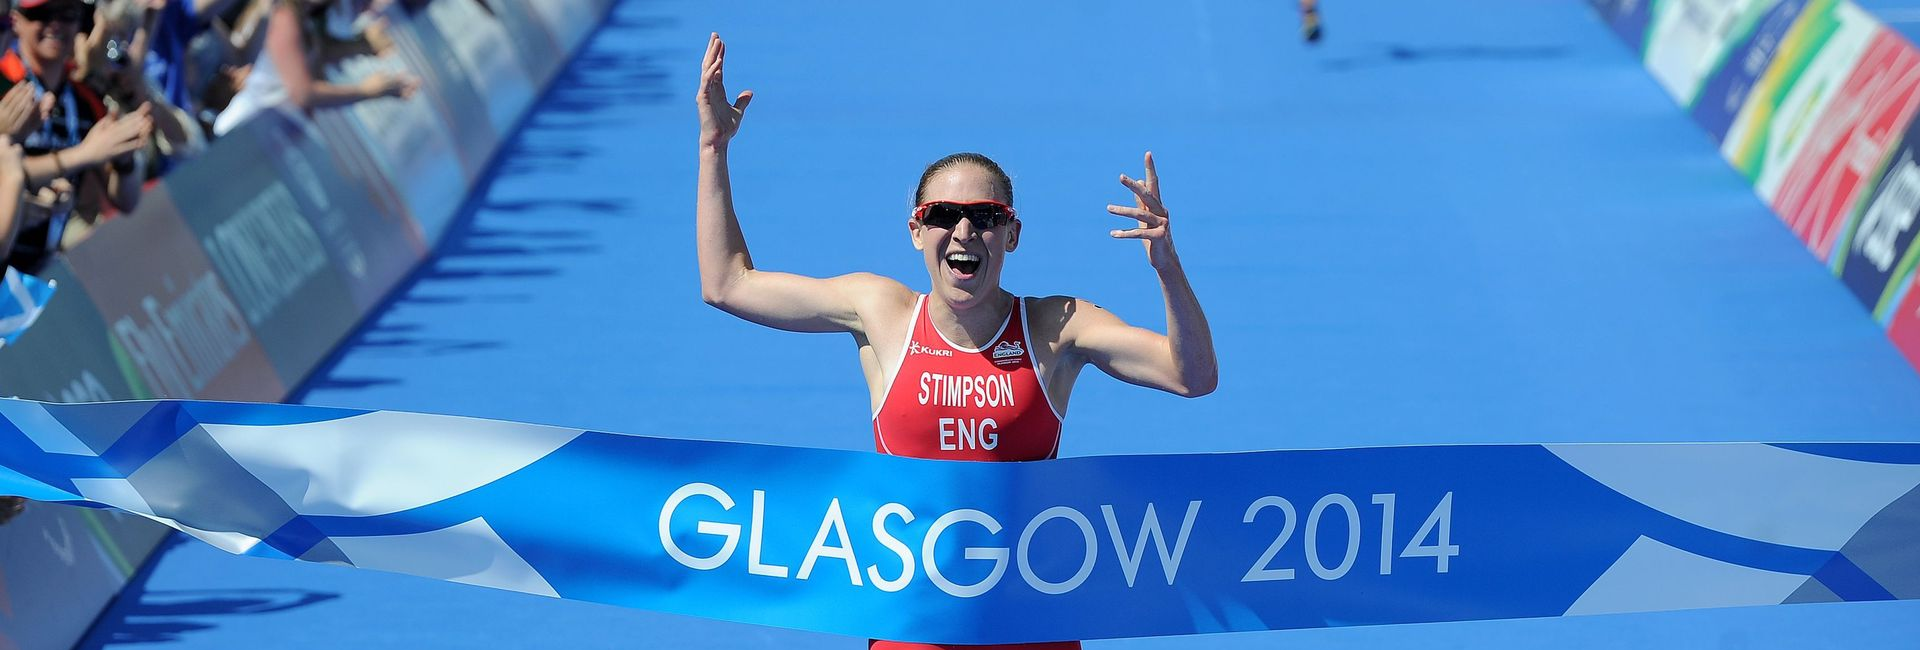 Athlete runner finishing the Glasgow 2014 triathlon in first place